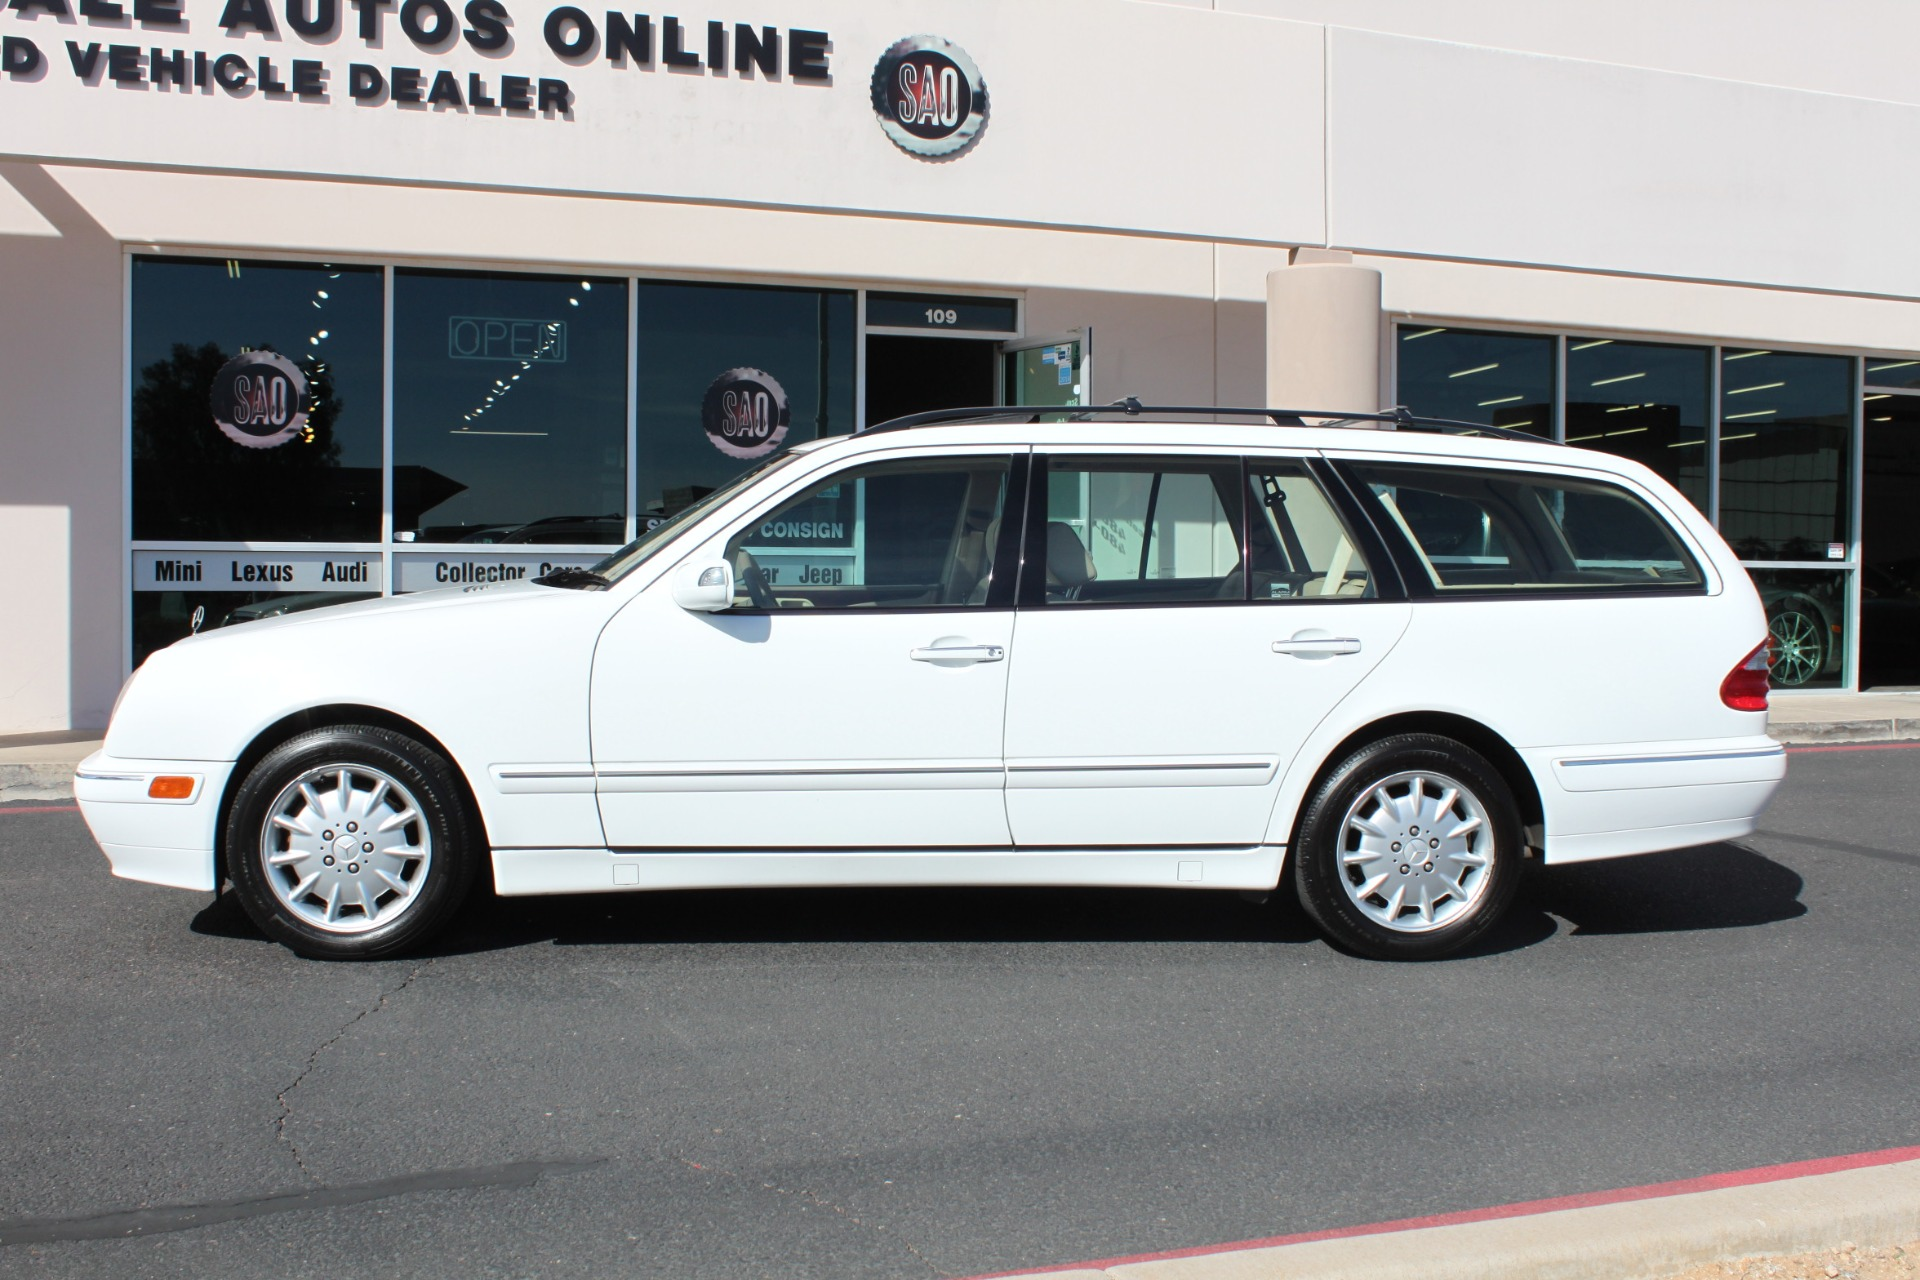 Used-2000-Mercedes-Benz-E-Class-Wagon-Wagoneer